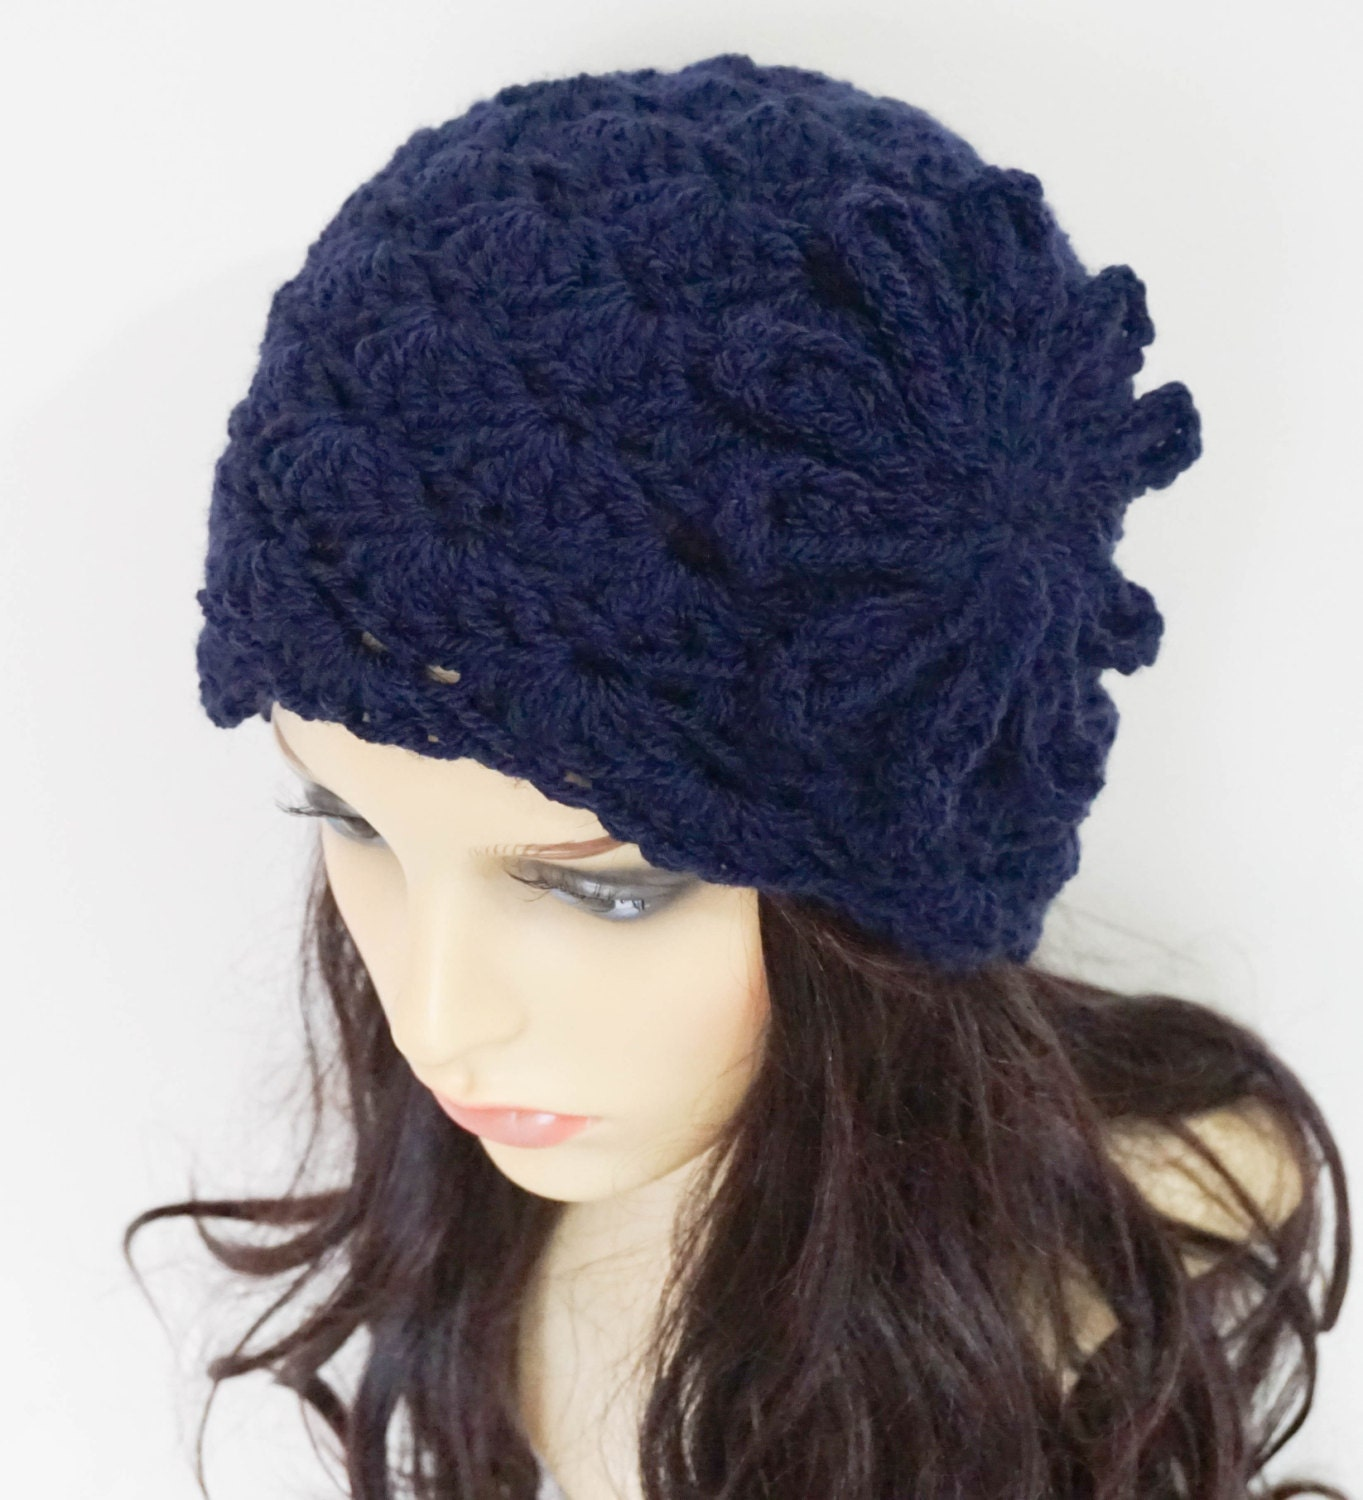 s winter hats navy beanie hat cool beanies for